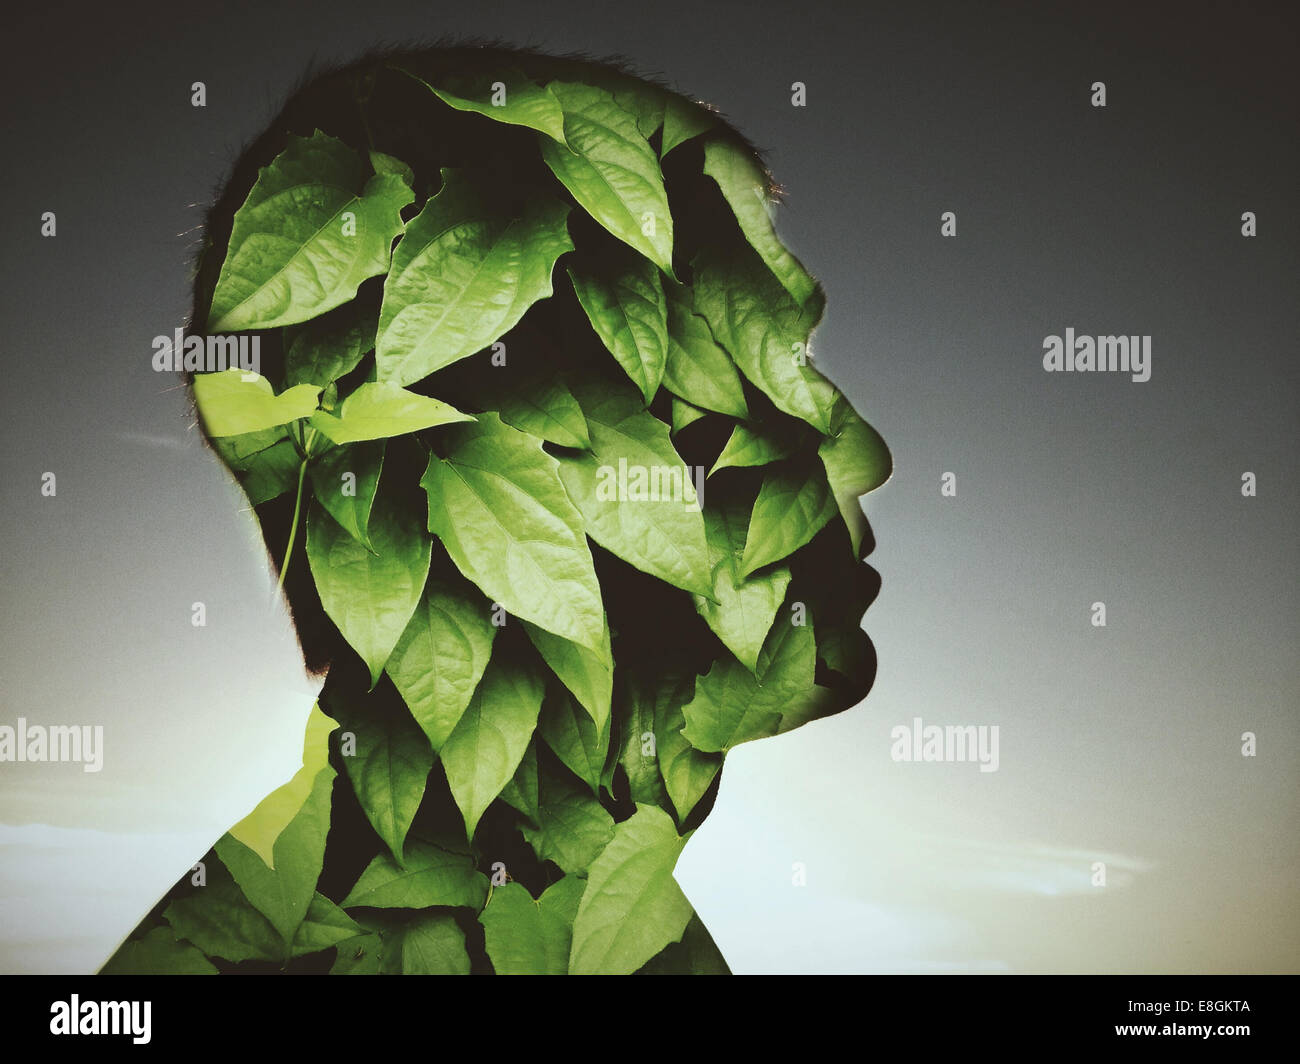 Leaves covering profile of man - Stock Image